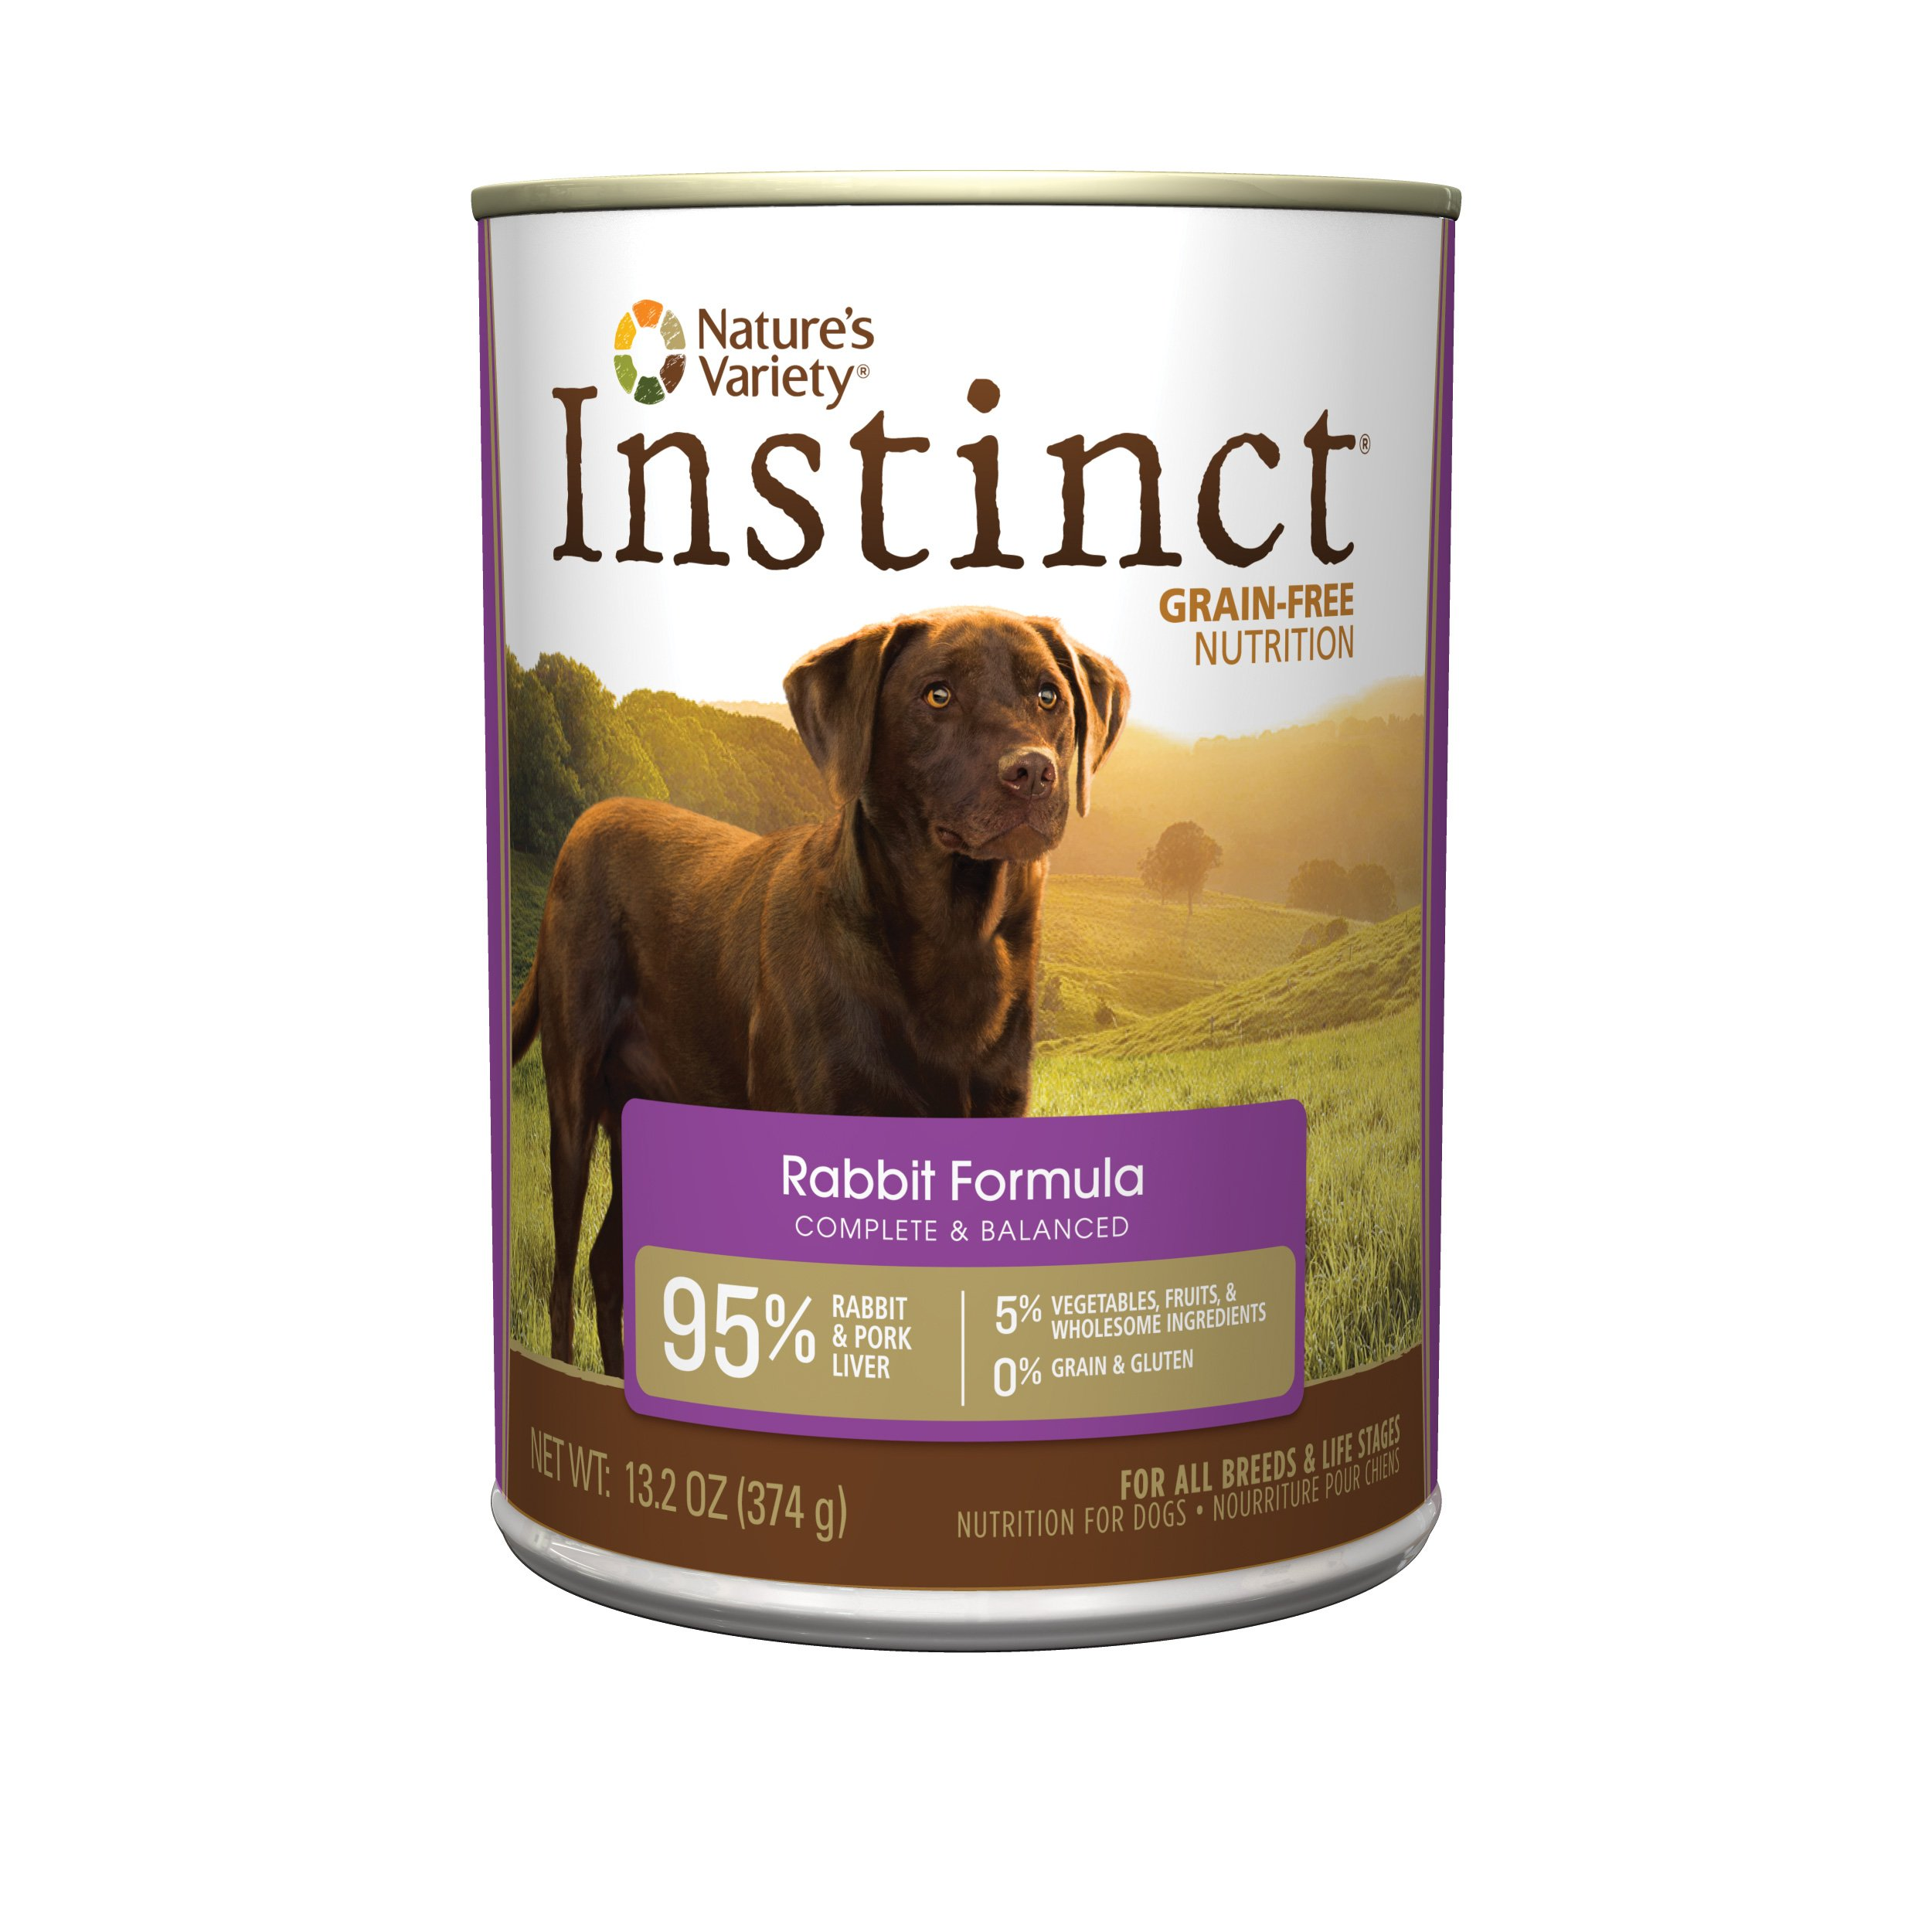 Instinct Grain Free Rabbit Formula Natural Wet Canned Dog Food By Nature'S Variety, 13.2 Oz. Cans (Case Of 12) by Nature's Variety